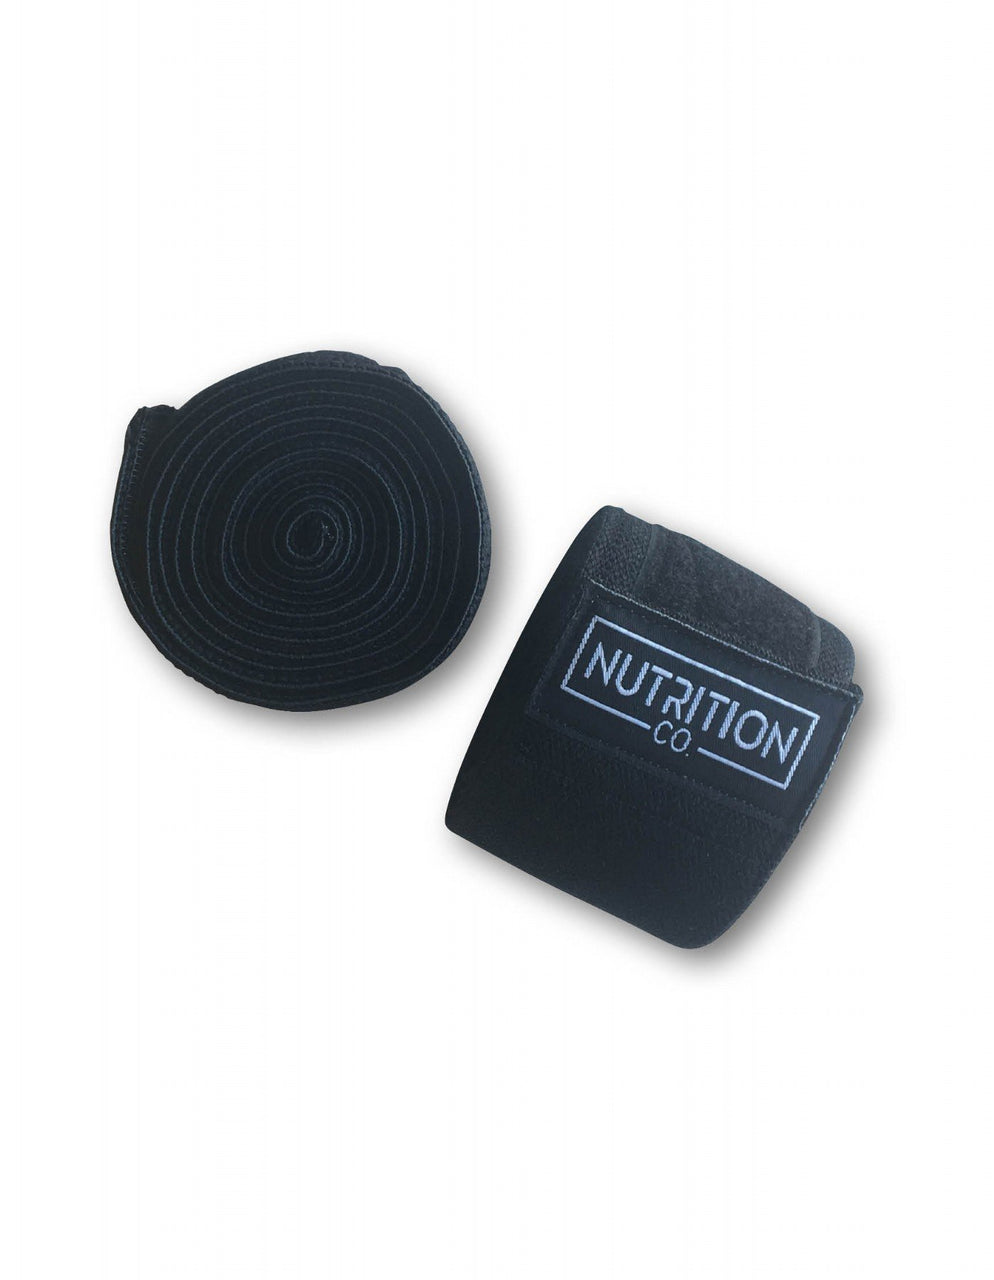 Nutrition Co Knee Wraps, Nutrition Co Australia - Nutrition Co Australia